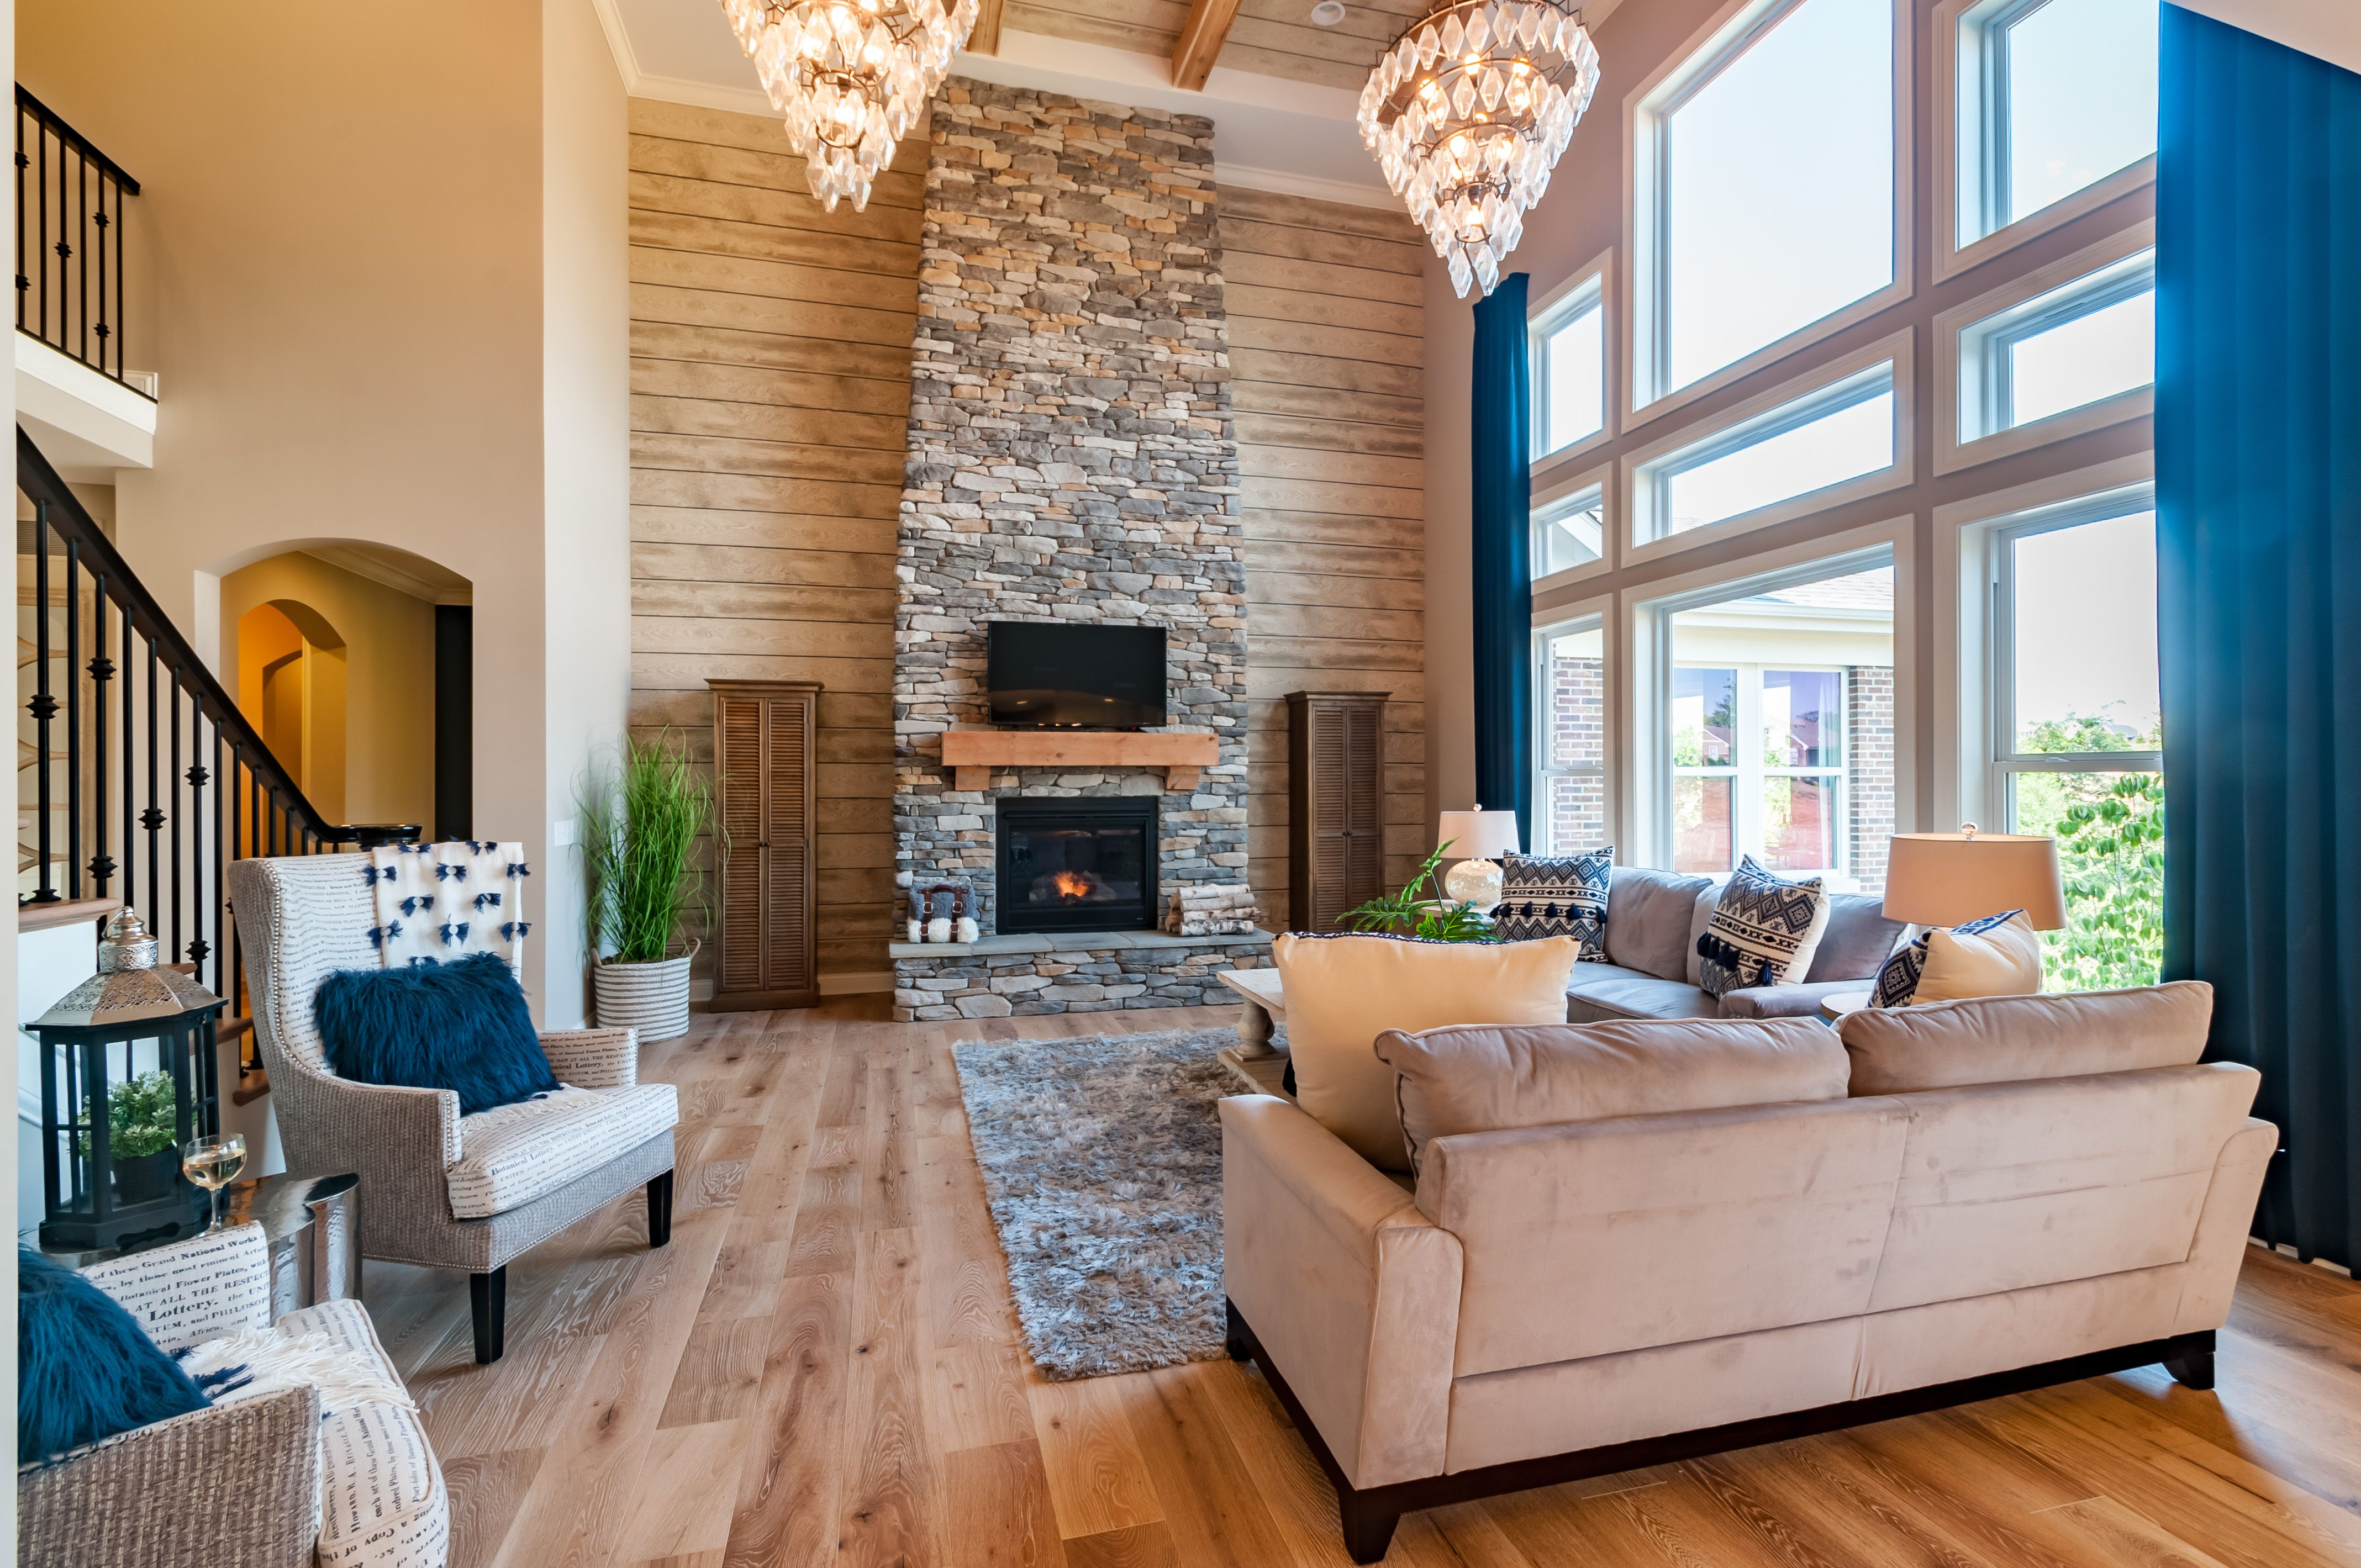 You'll love the floor to ceiling stone fireplace in this two-story family